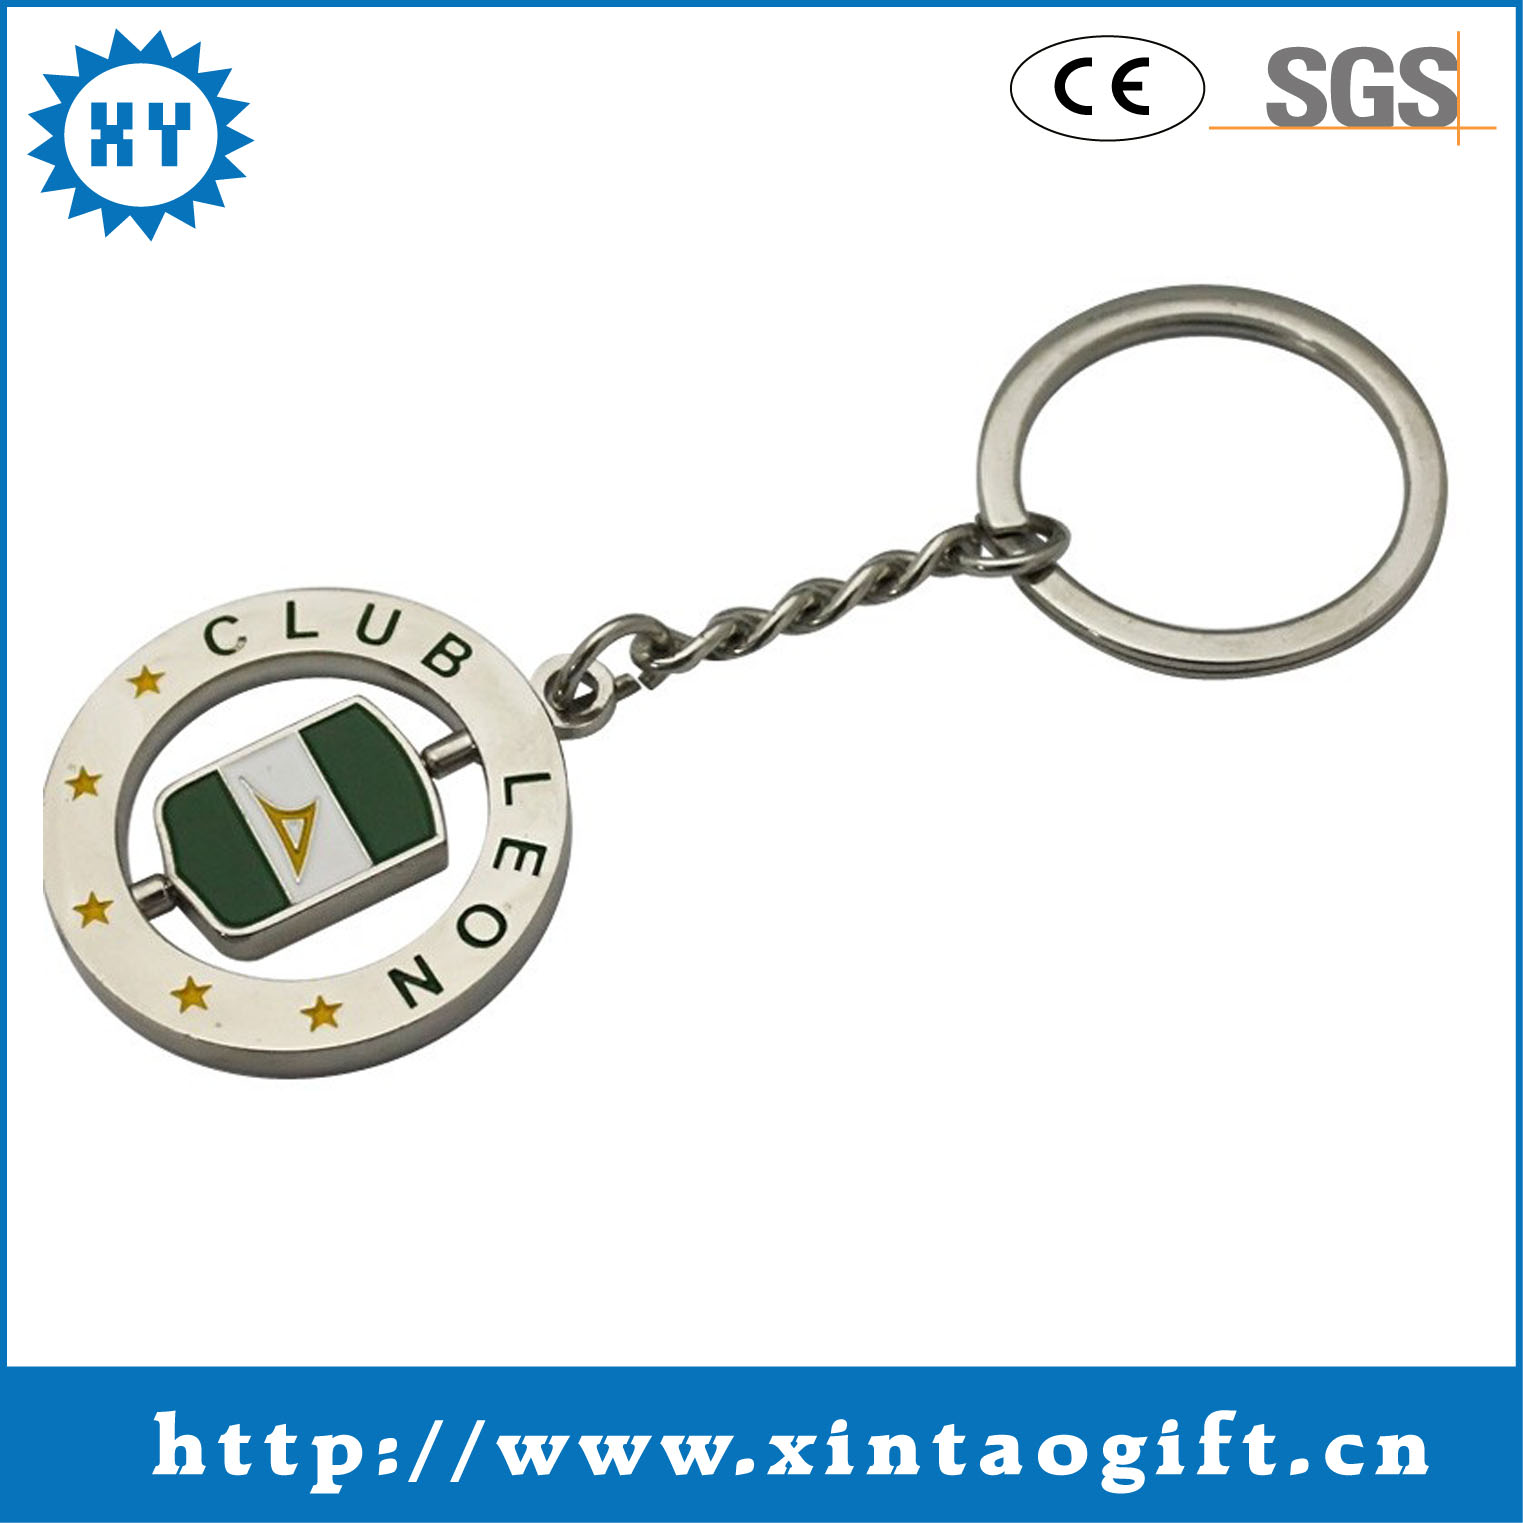 Excellent service and EXW price Spin keychain1 from xintao factory keychain series